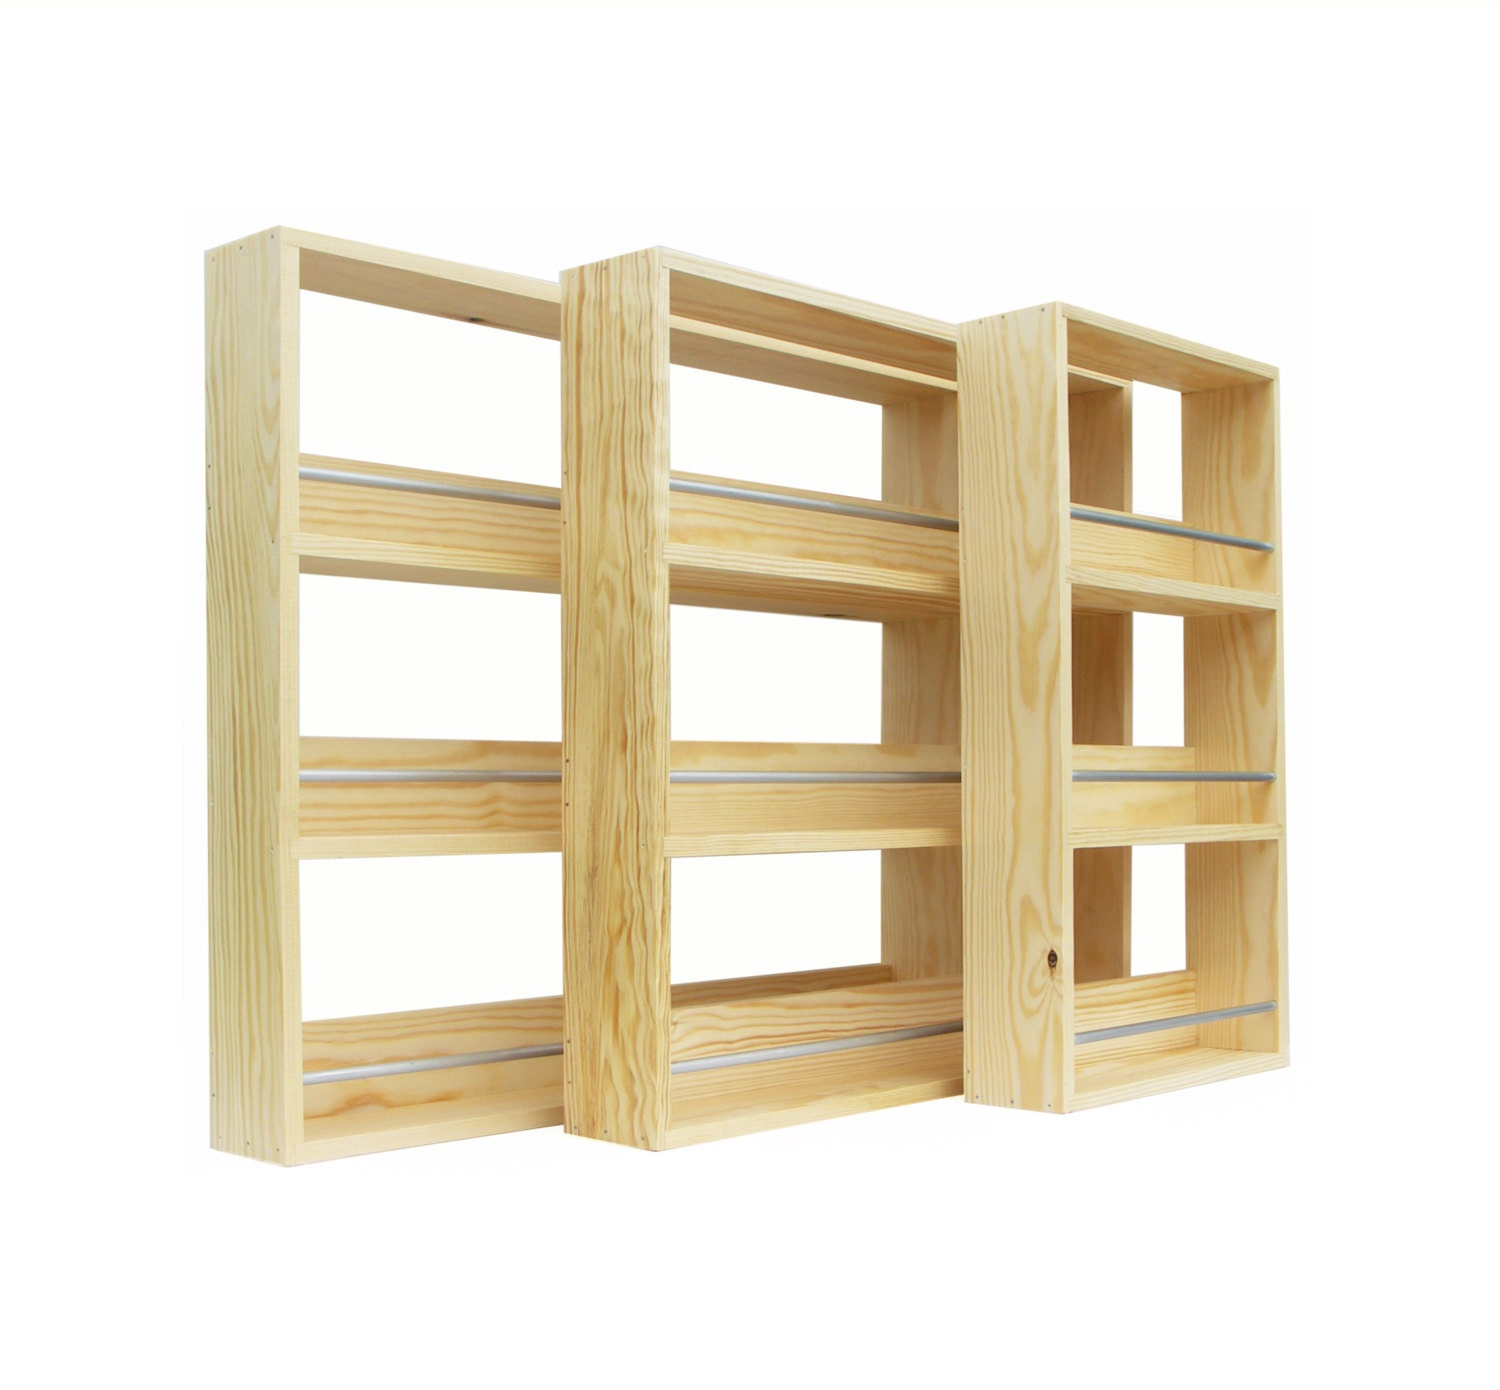 Solid Pine Spice Rack Contemporary Minimalist Style 3 Shelves